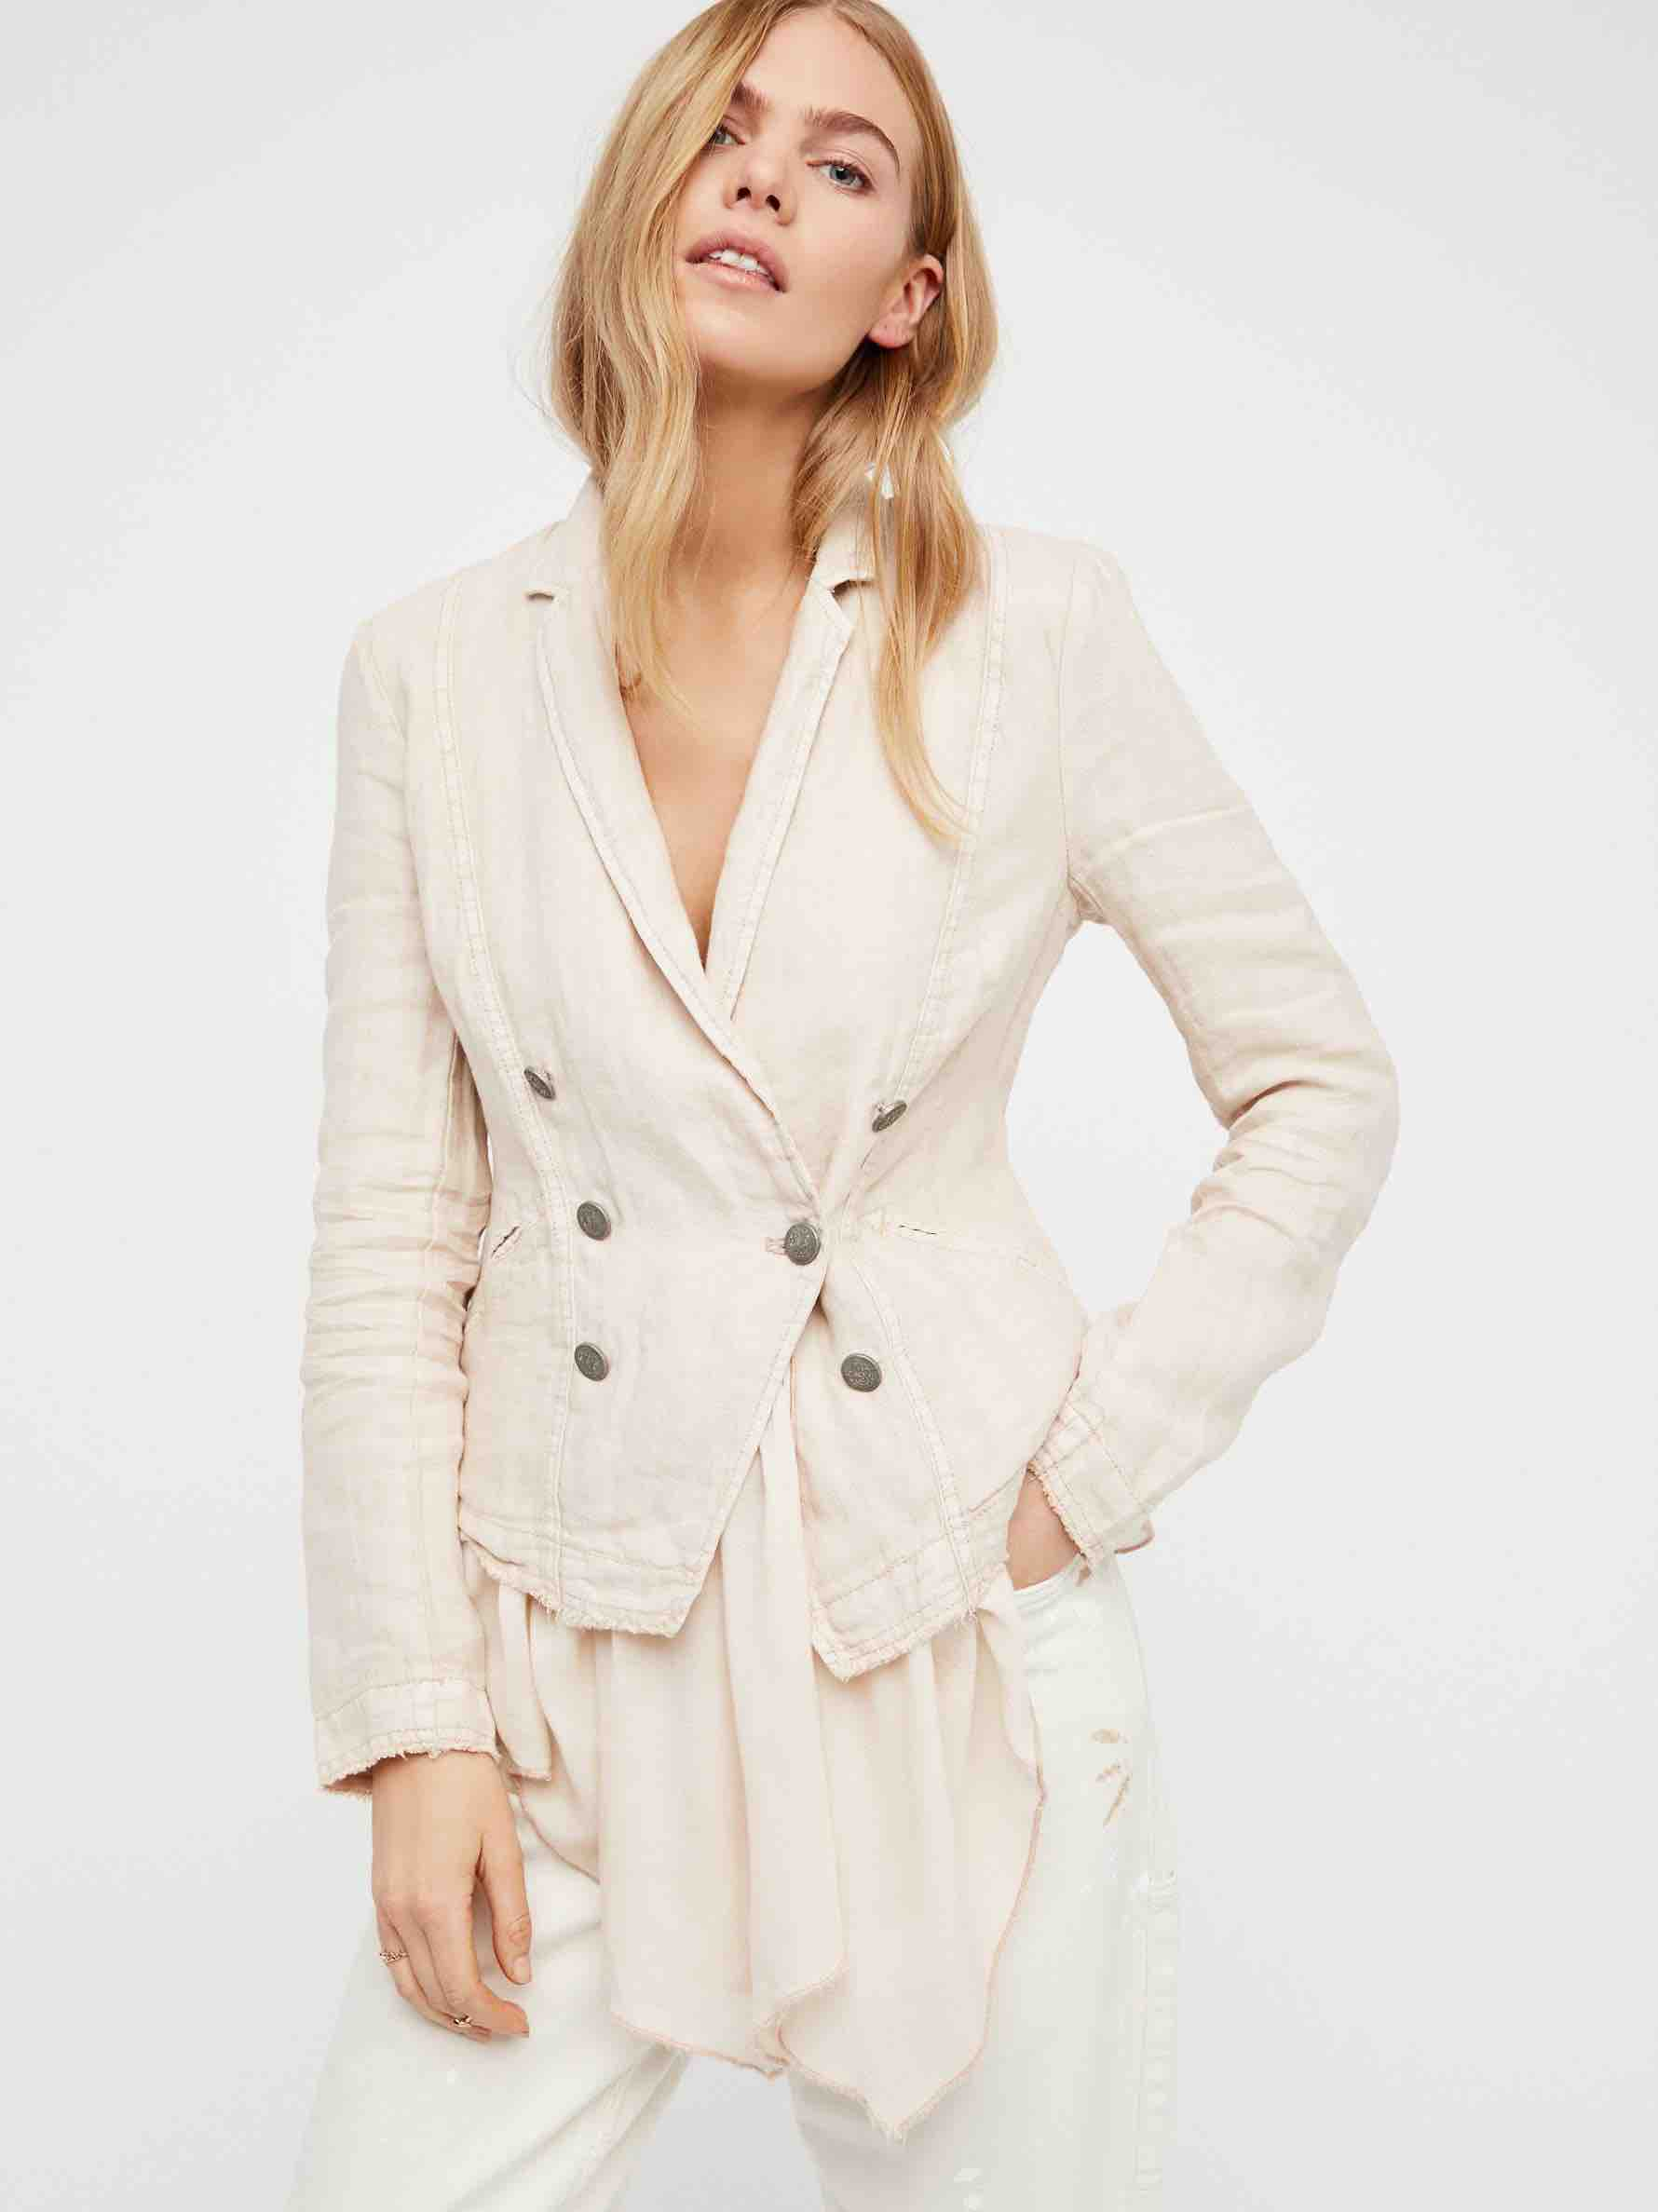 Free People Layered Ruffles Blazer